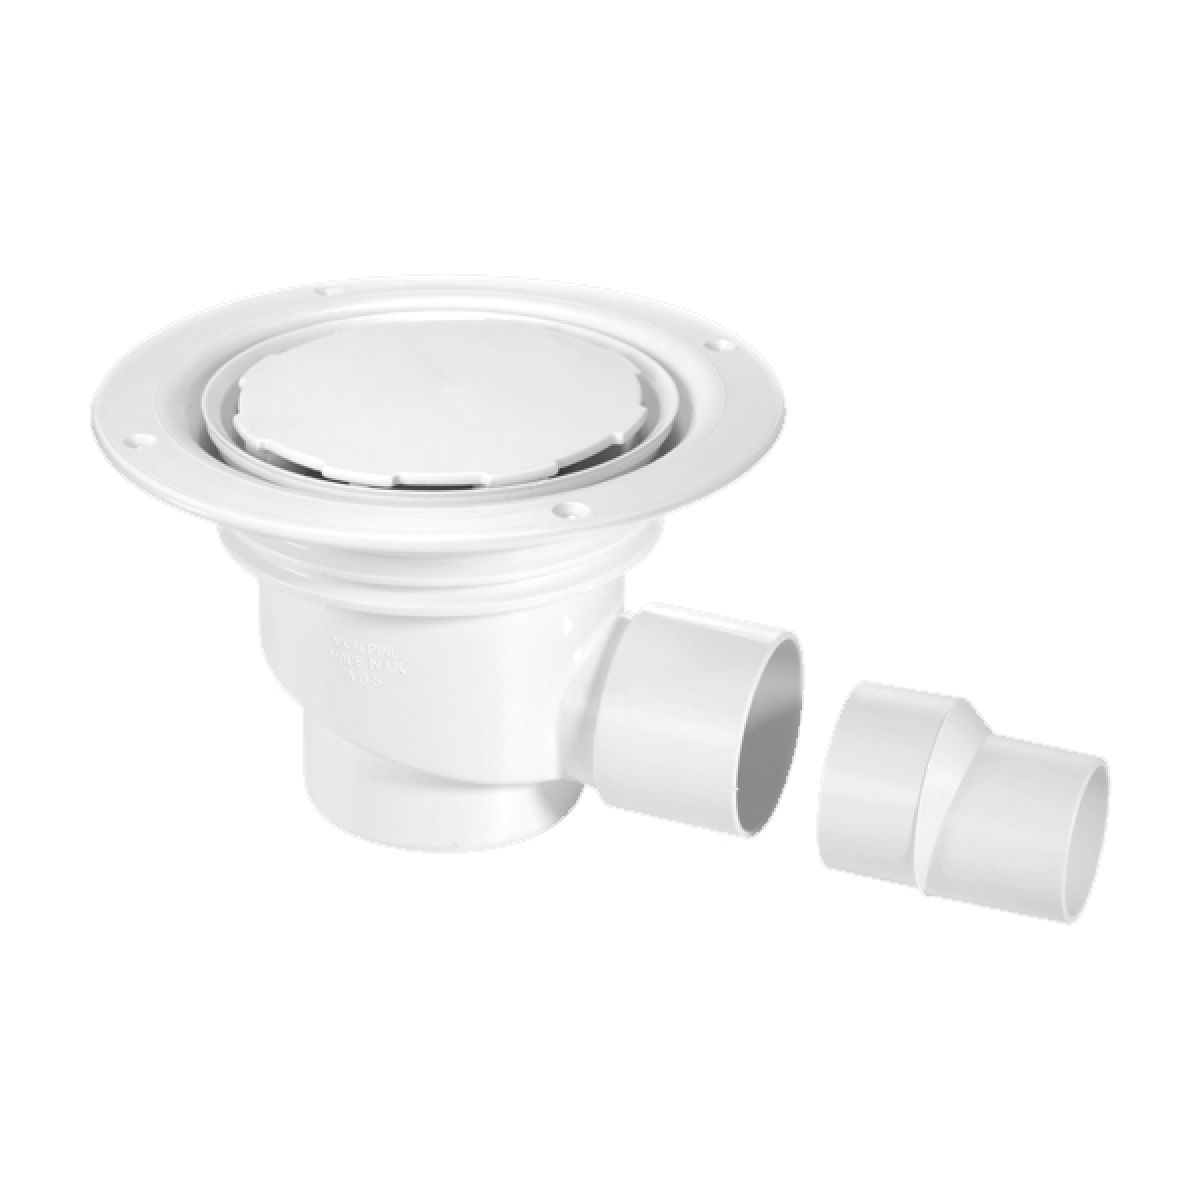 McAlpine TSG1WH-NC 75mm Water Seal Trapped Gully White Plastic Clamp Ring and Cover Plate